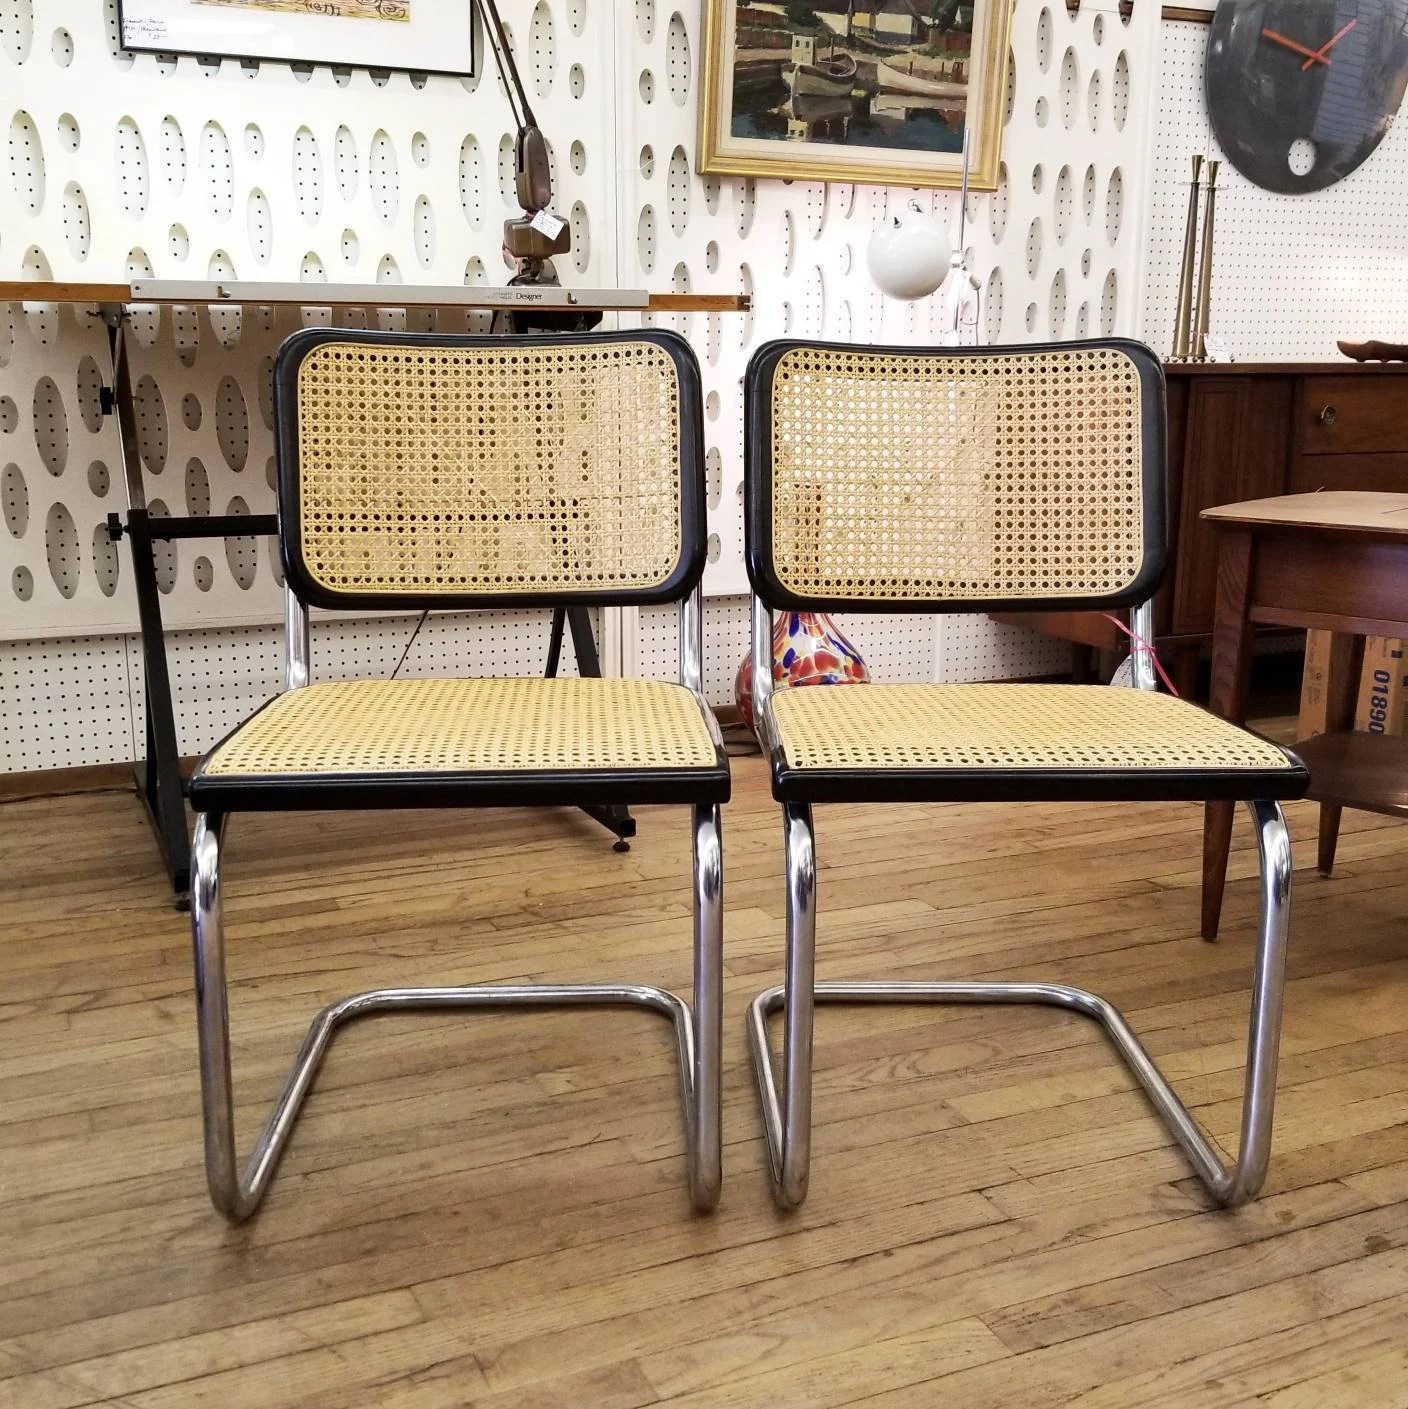 Thonet S32 Two Marcel Breuer S32 Side Chairs By Thonet Vintage Bauhaus